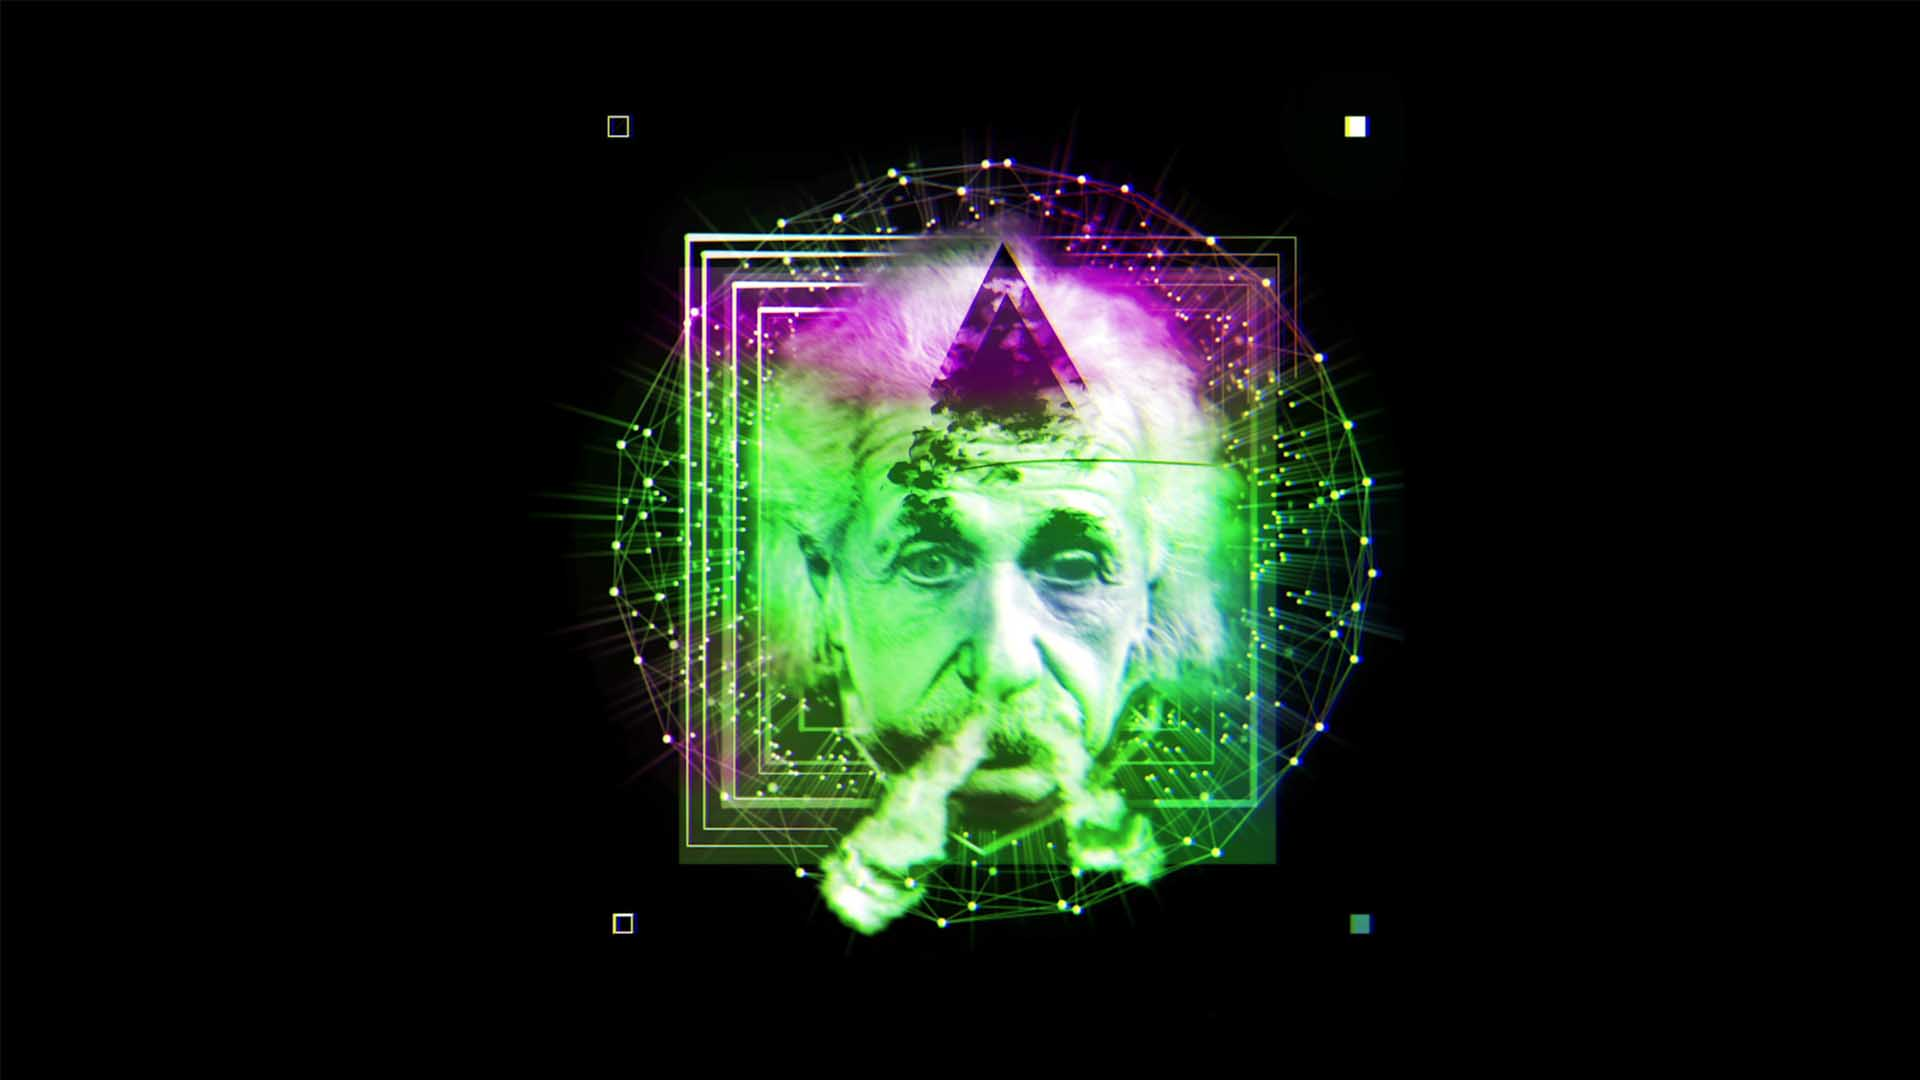 hologram holographic video projection visuals